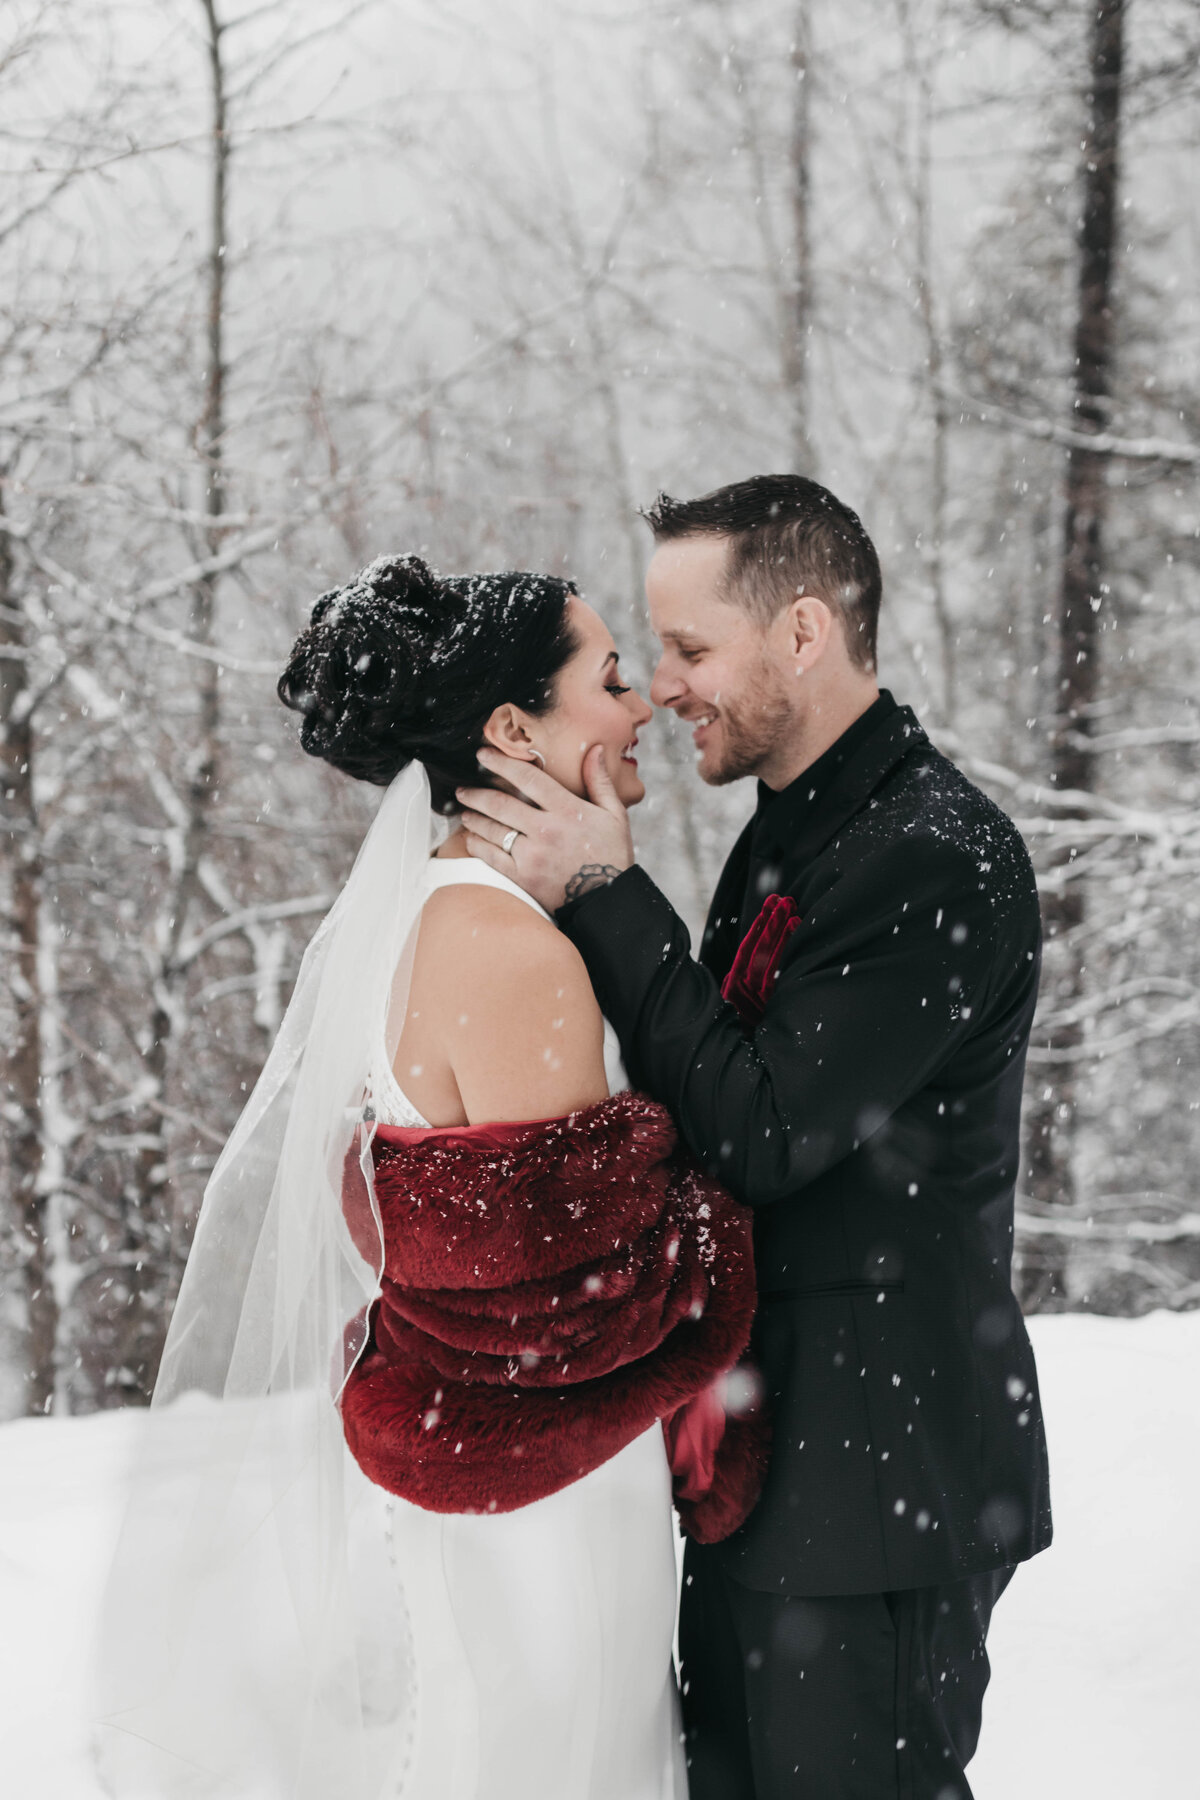 Winter Snowy Wedding in Spokane Washington - Clara Jay Photo_-3